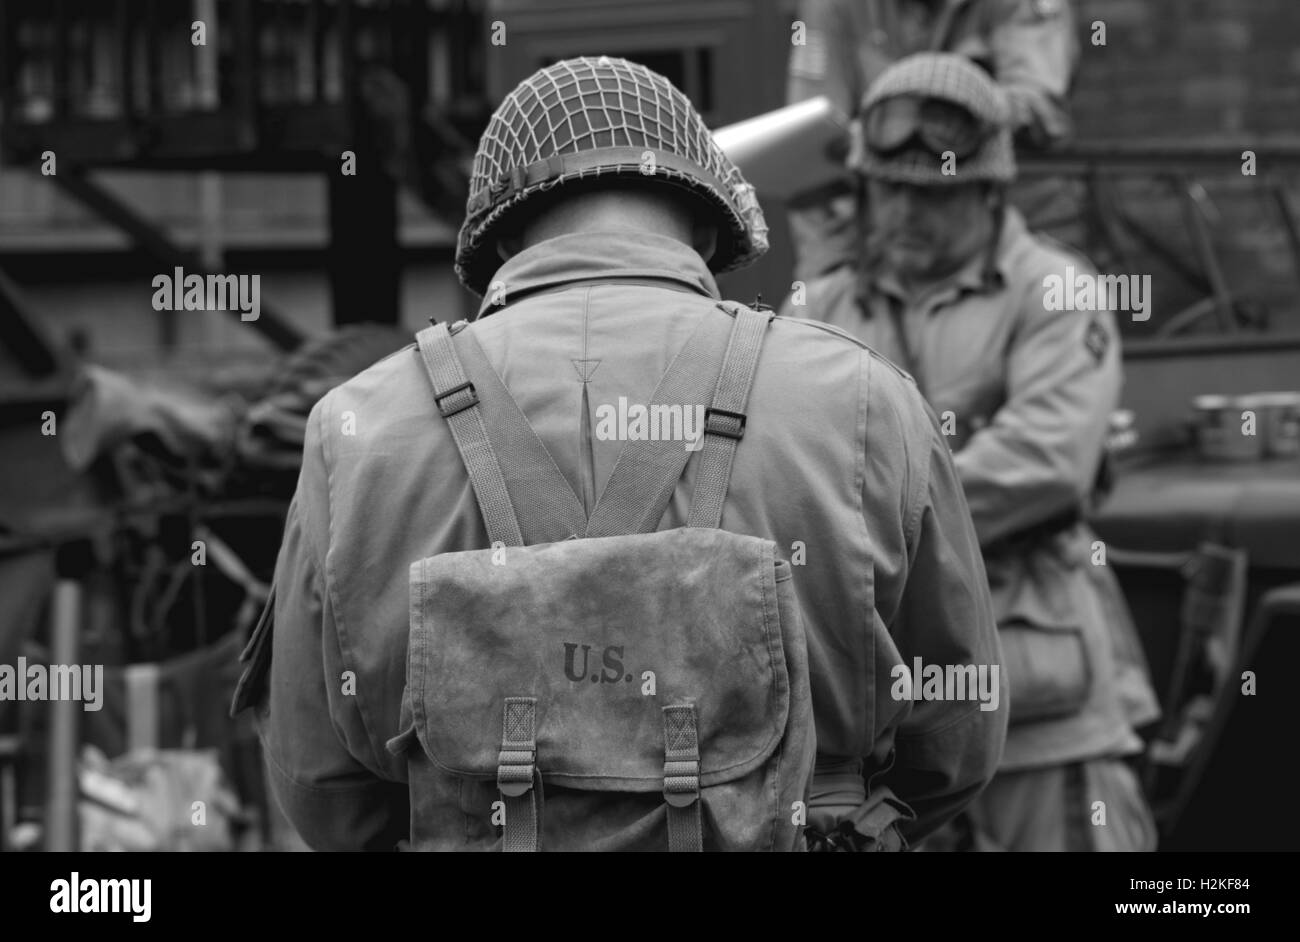 black and white soilders in us uniform heads tilted - Stock Image